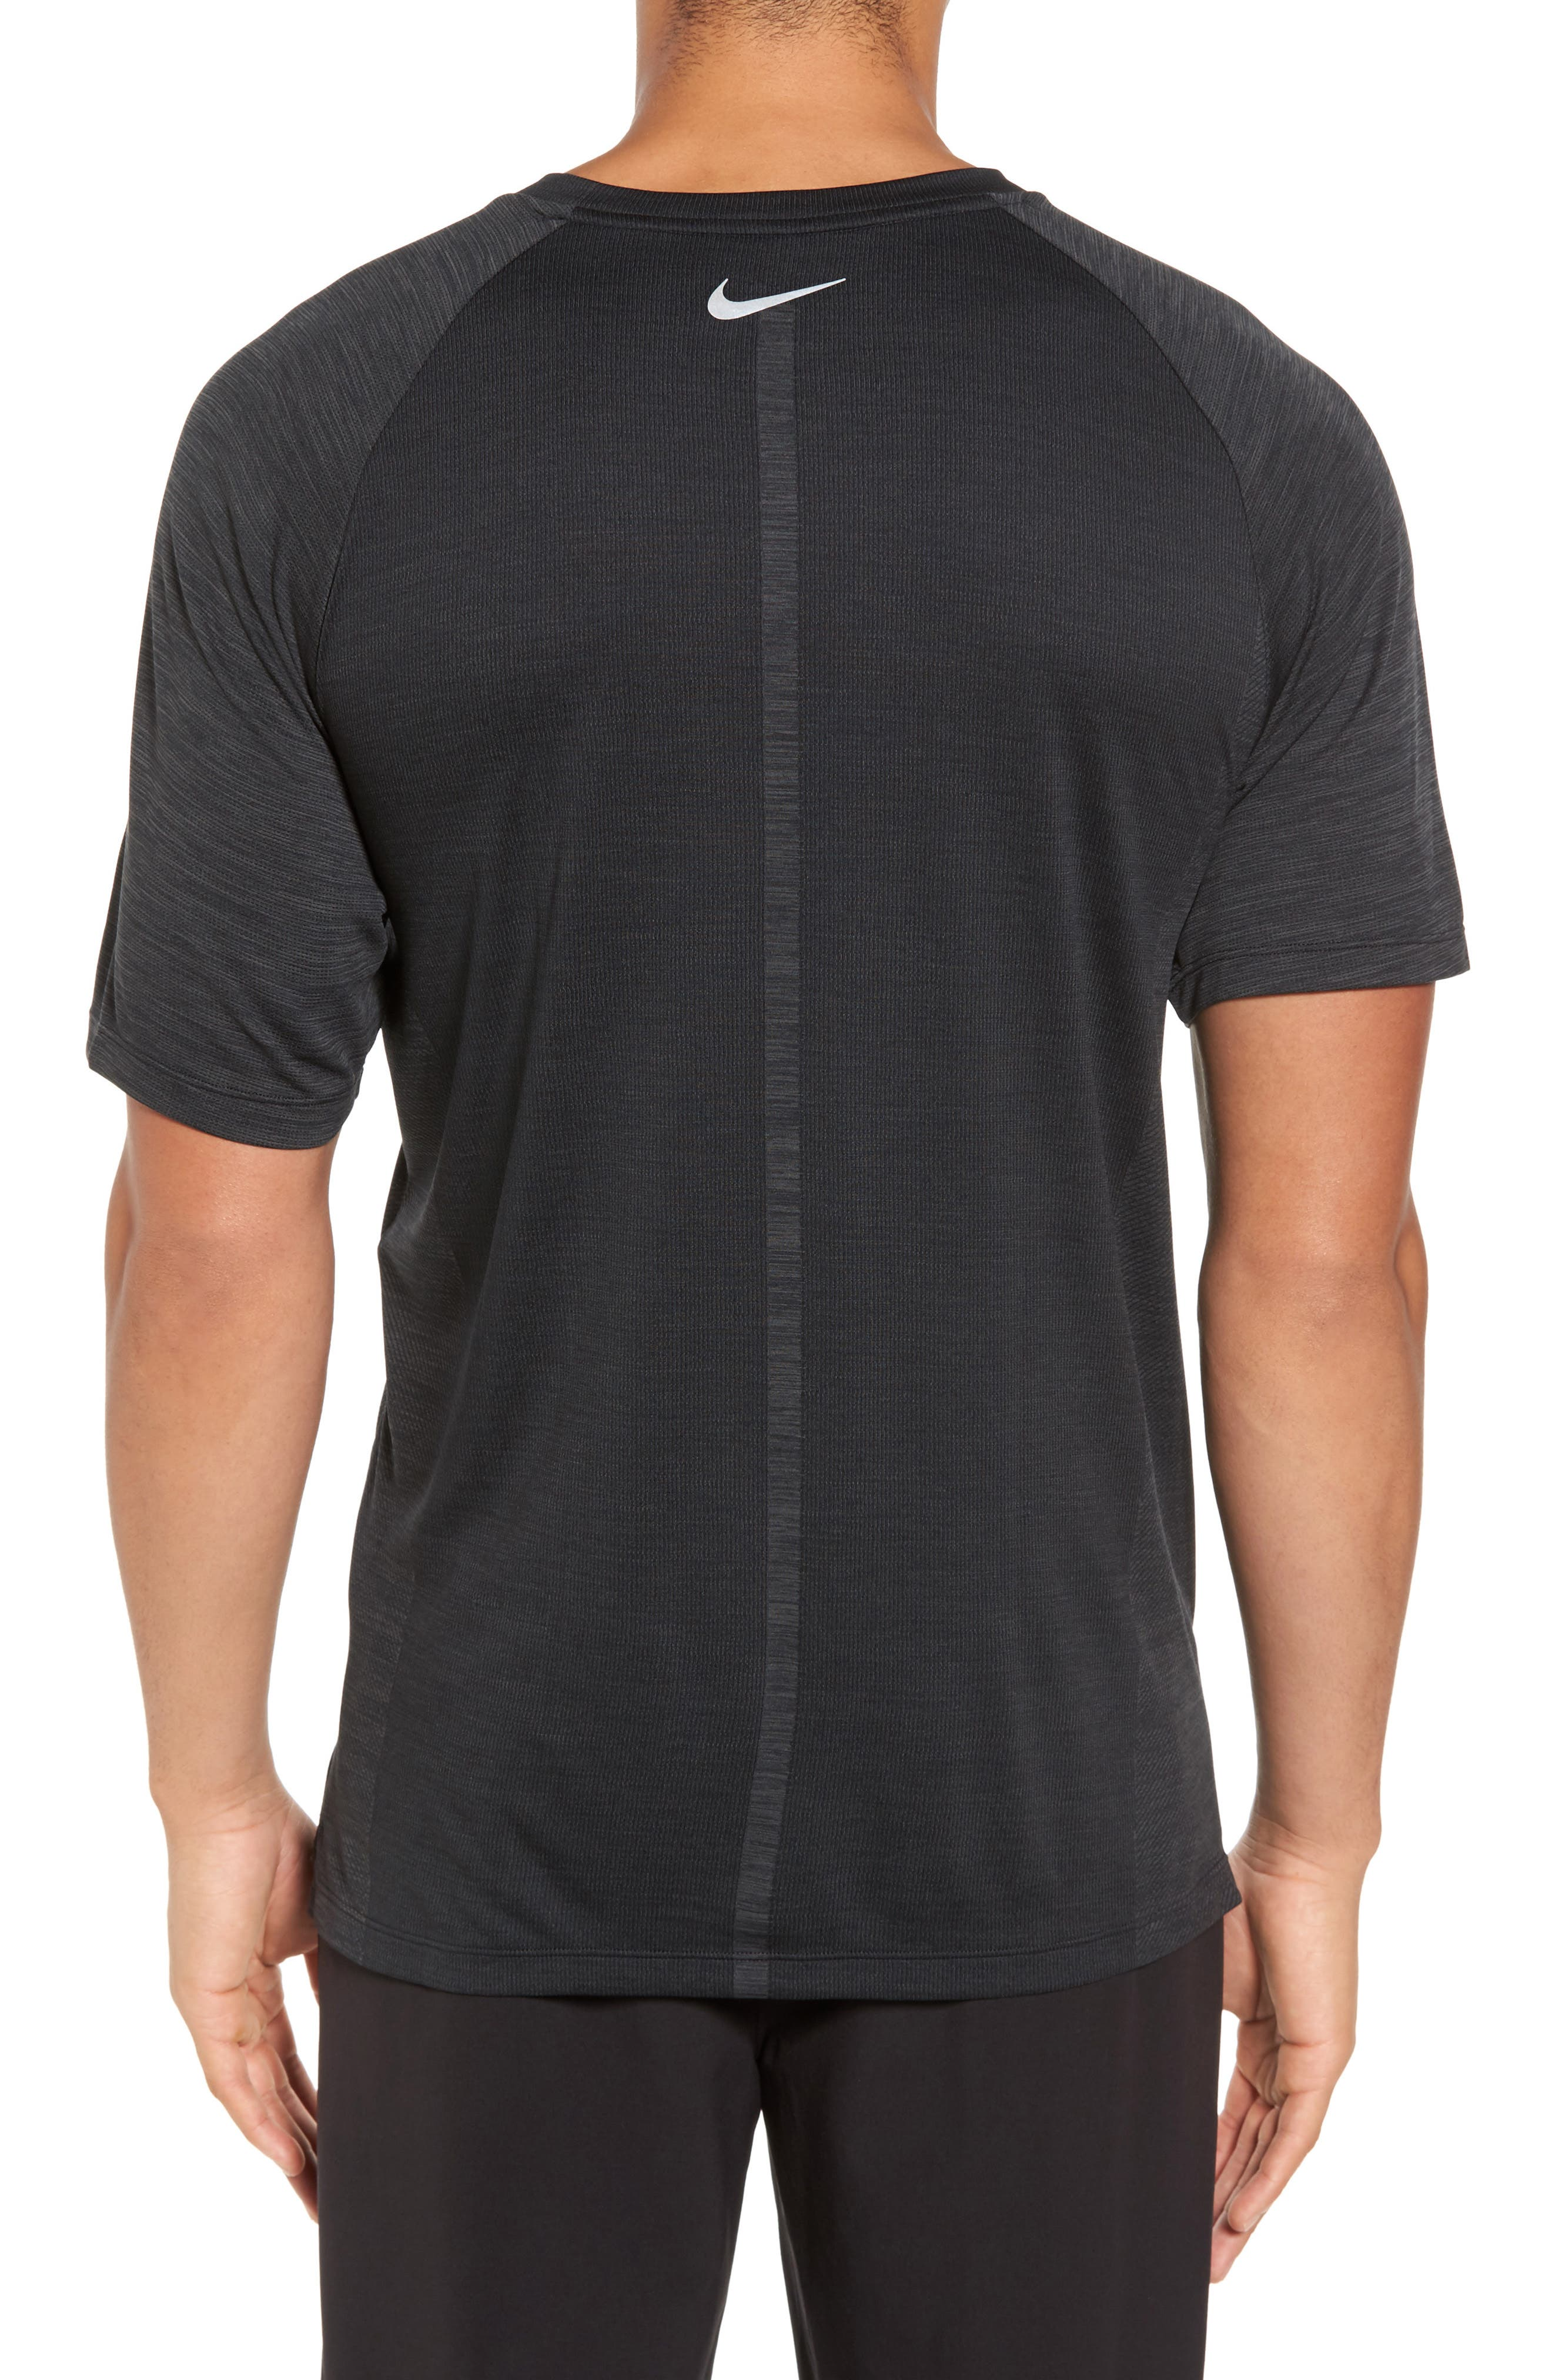 Dry Medalist Running Top,                             Alternate thumbnail 2, color,                             Anthracite/ Black